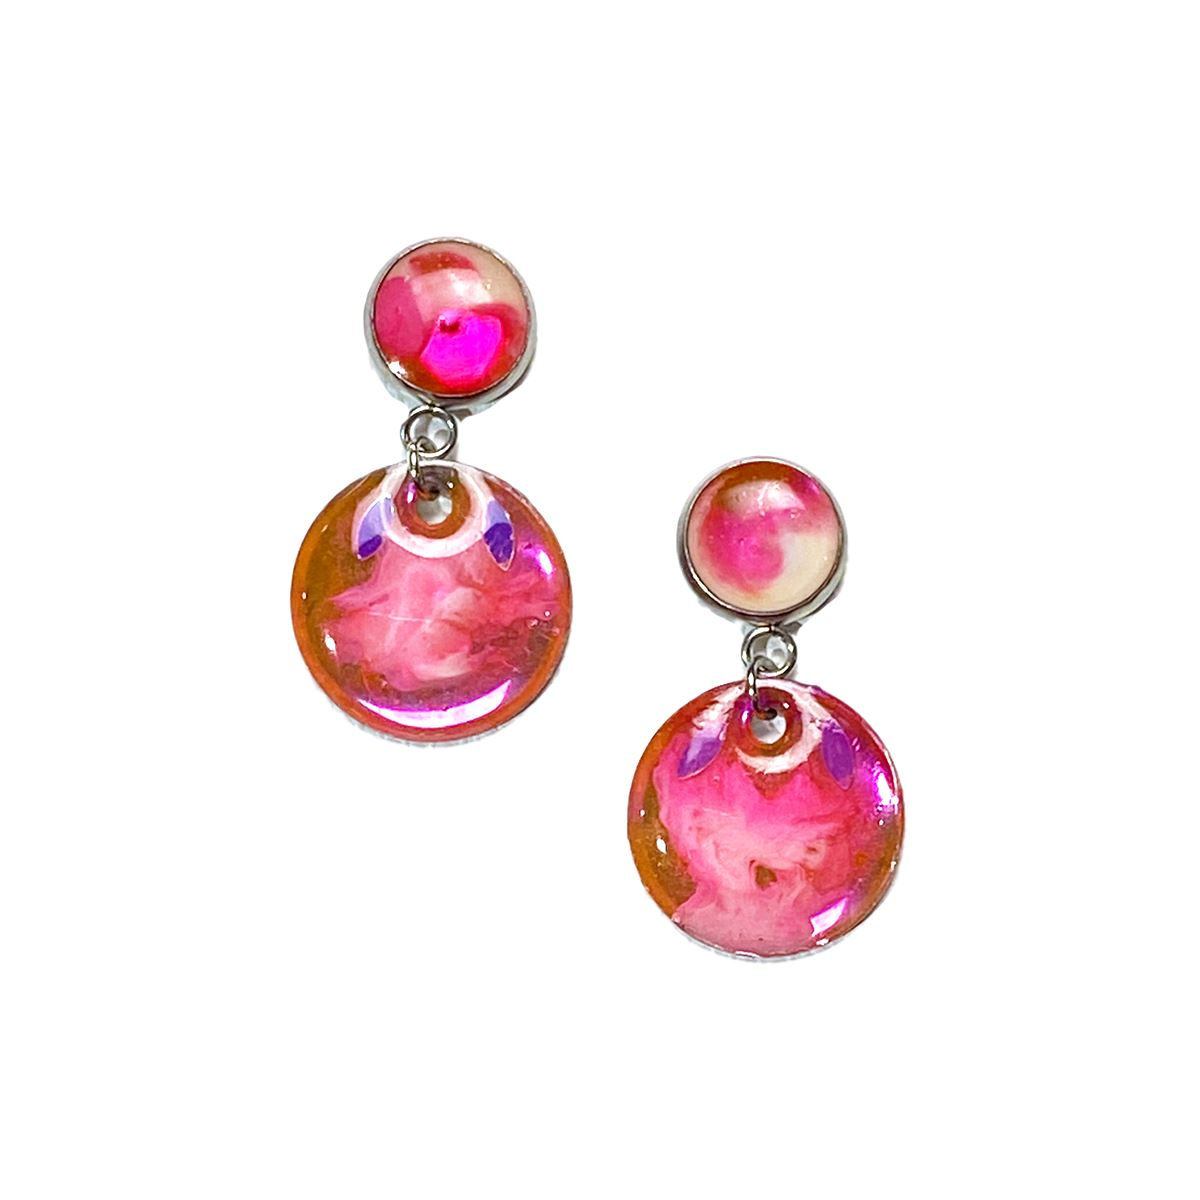 Color Study - medium pink white glitter drop stud earrings earrings Deanna Dot Store